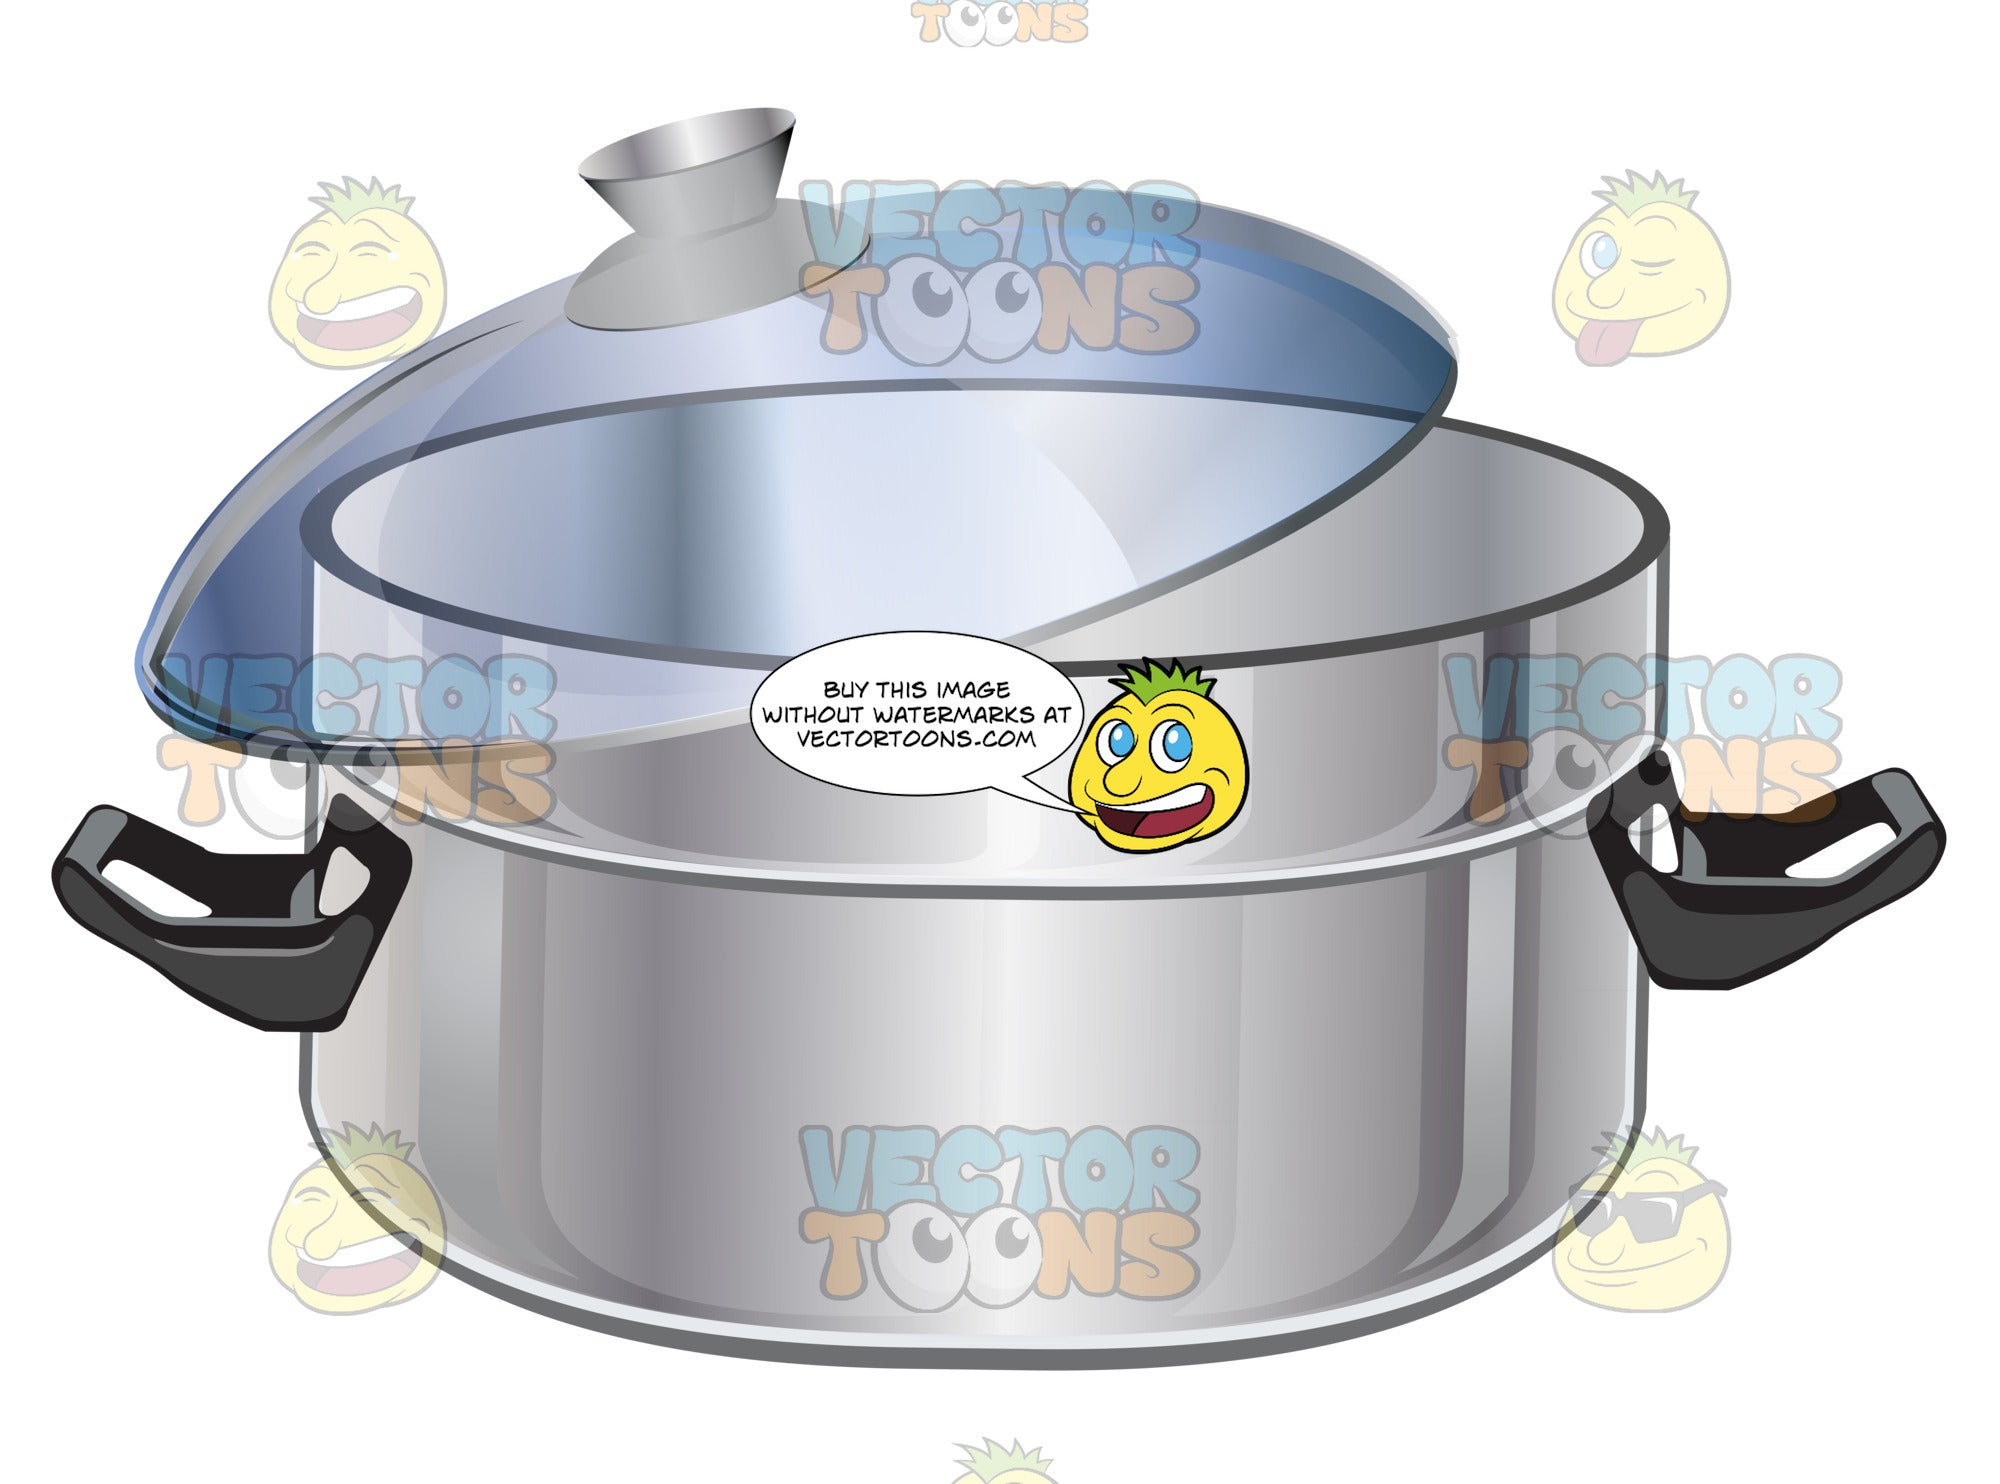 Stainless Steel Quart Stockpot With Clear Lid And Black Handles